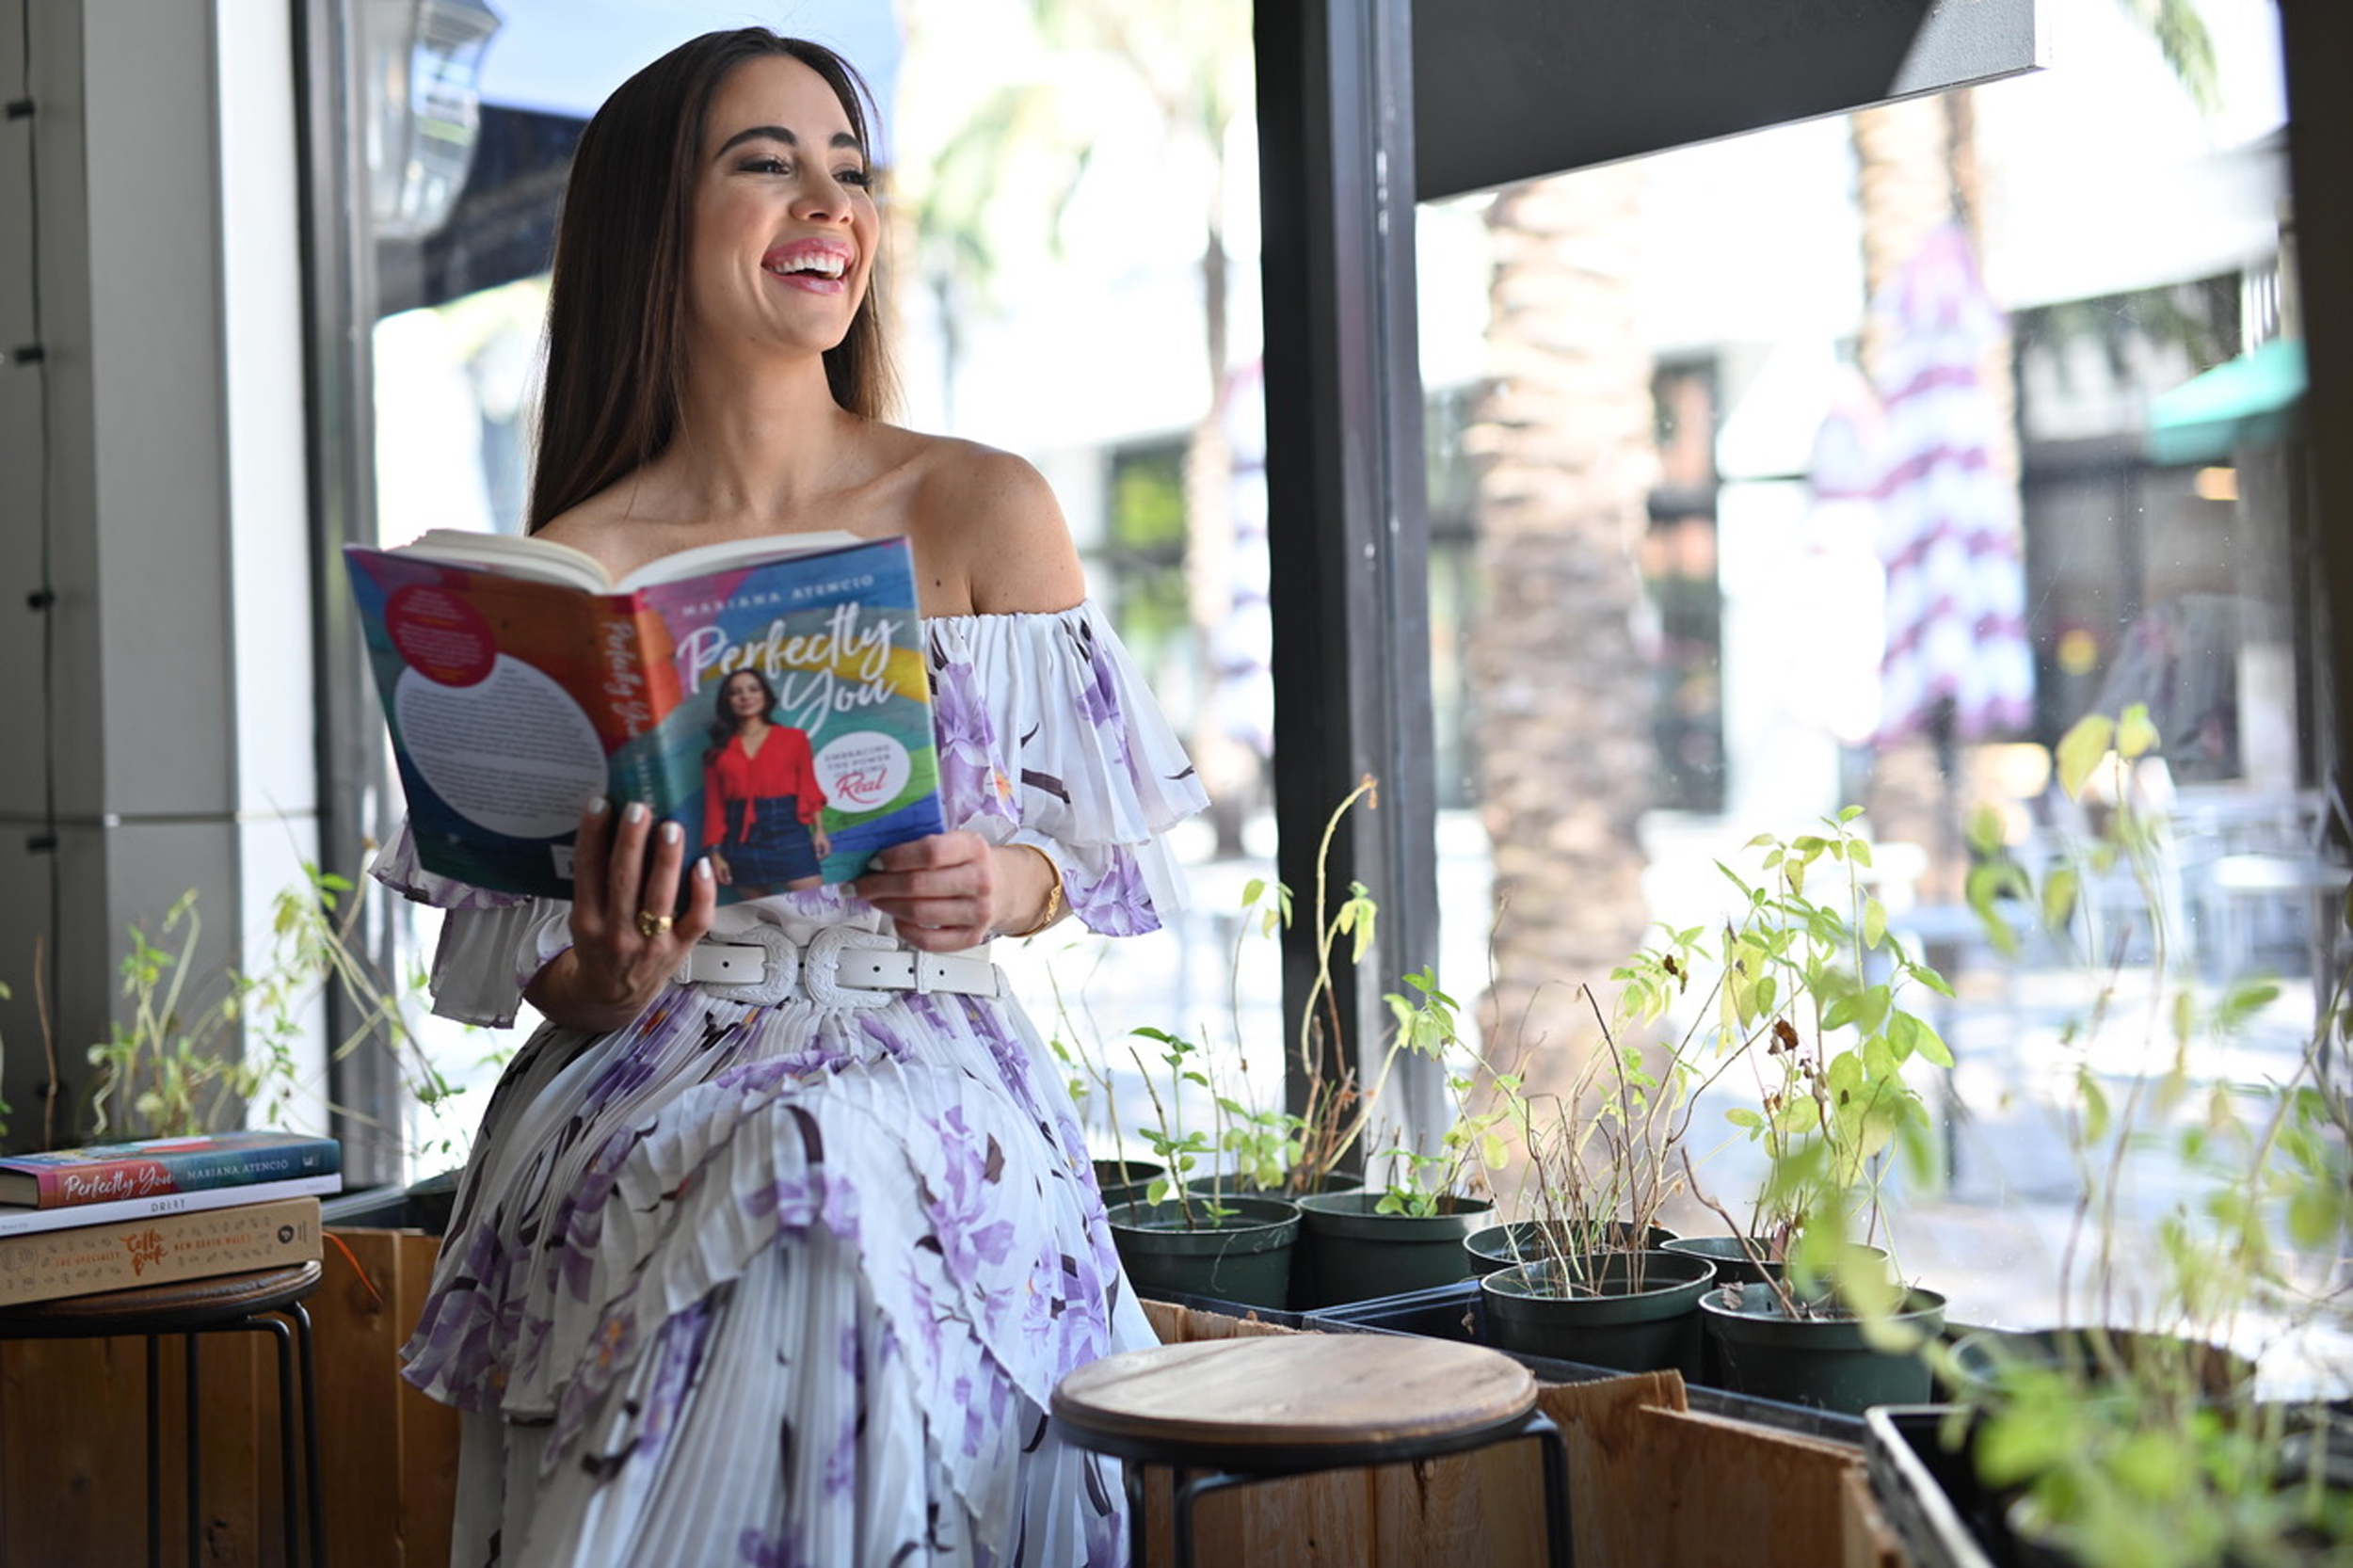 From-rejection-to-growth,-journalist-Mariana-Atencio-tells-all-in-'Perfectly-You'